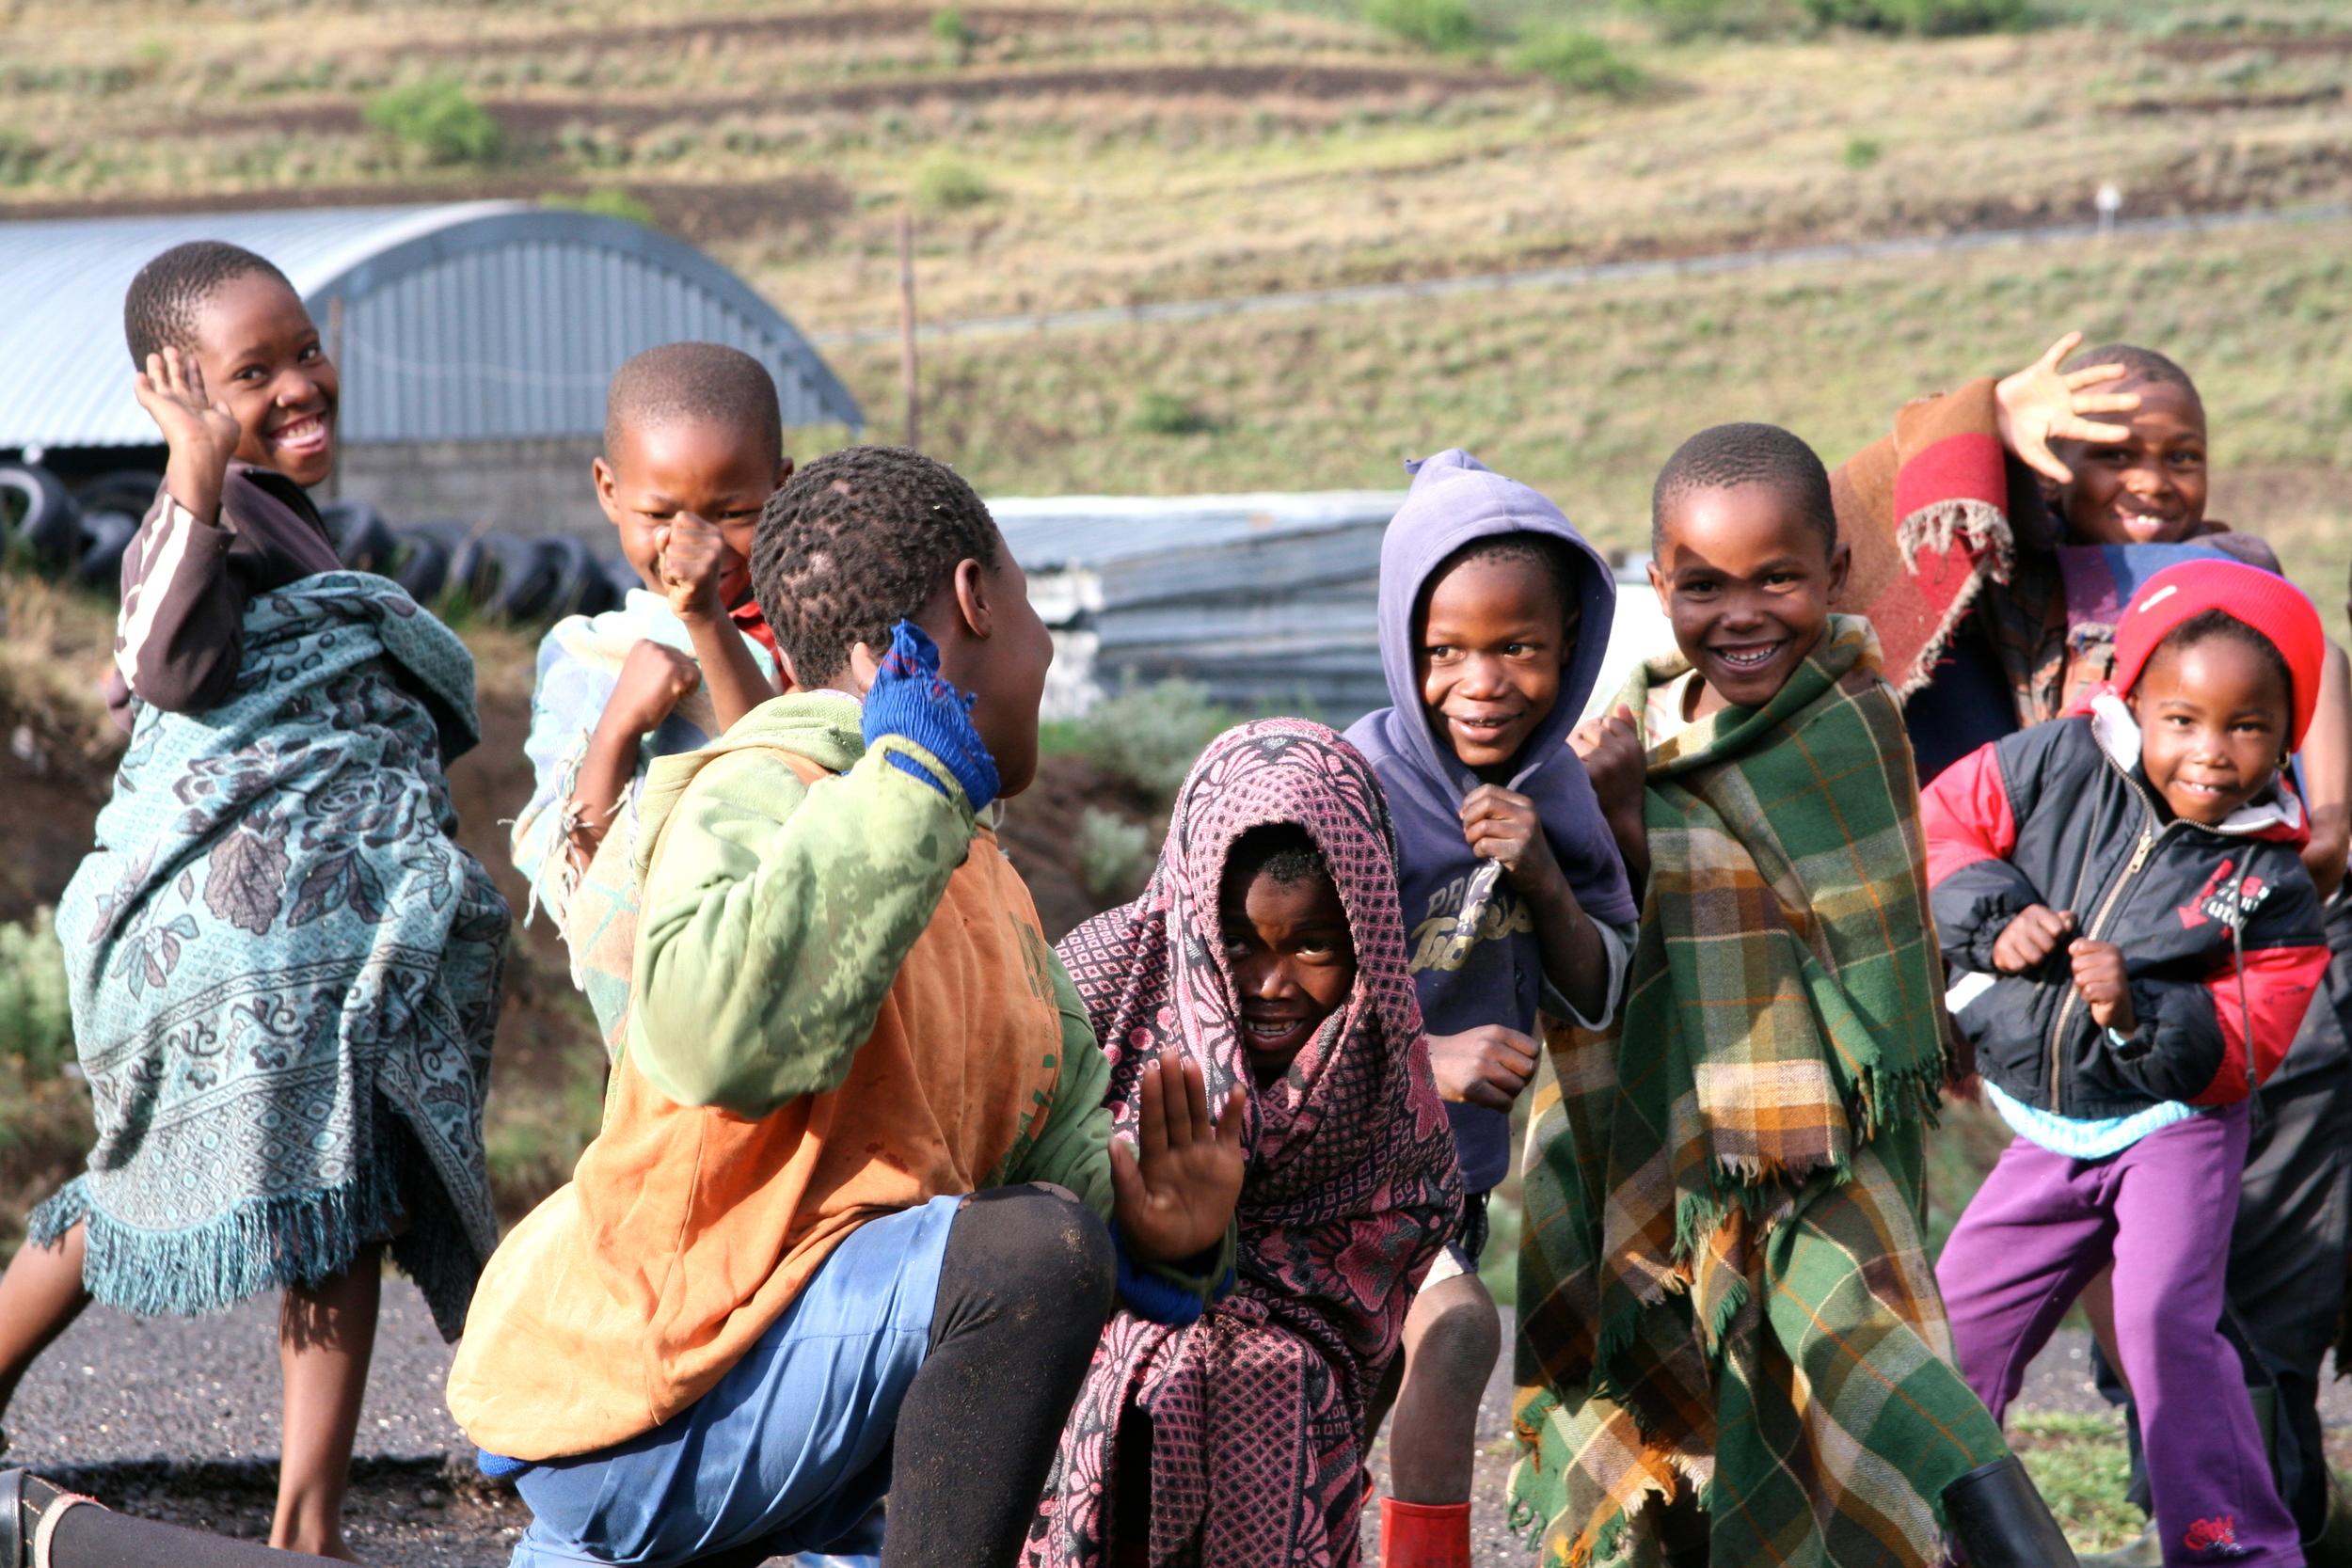 Lesotho kids - they need some bikes!